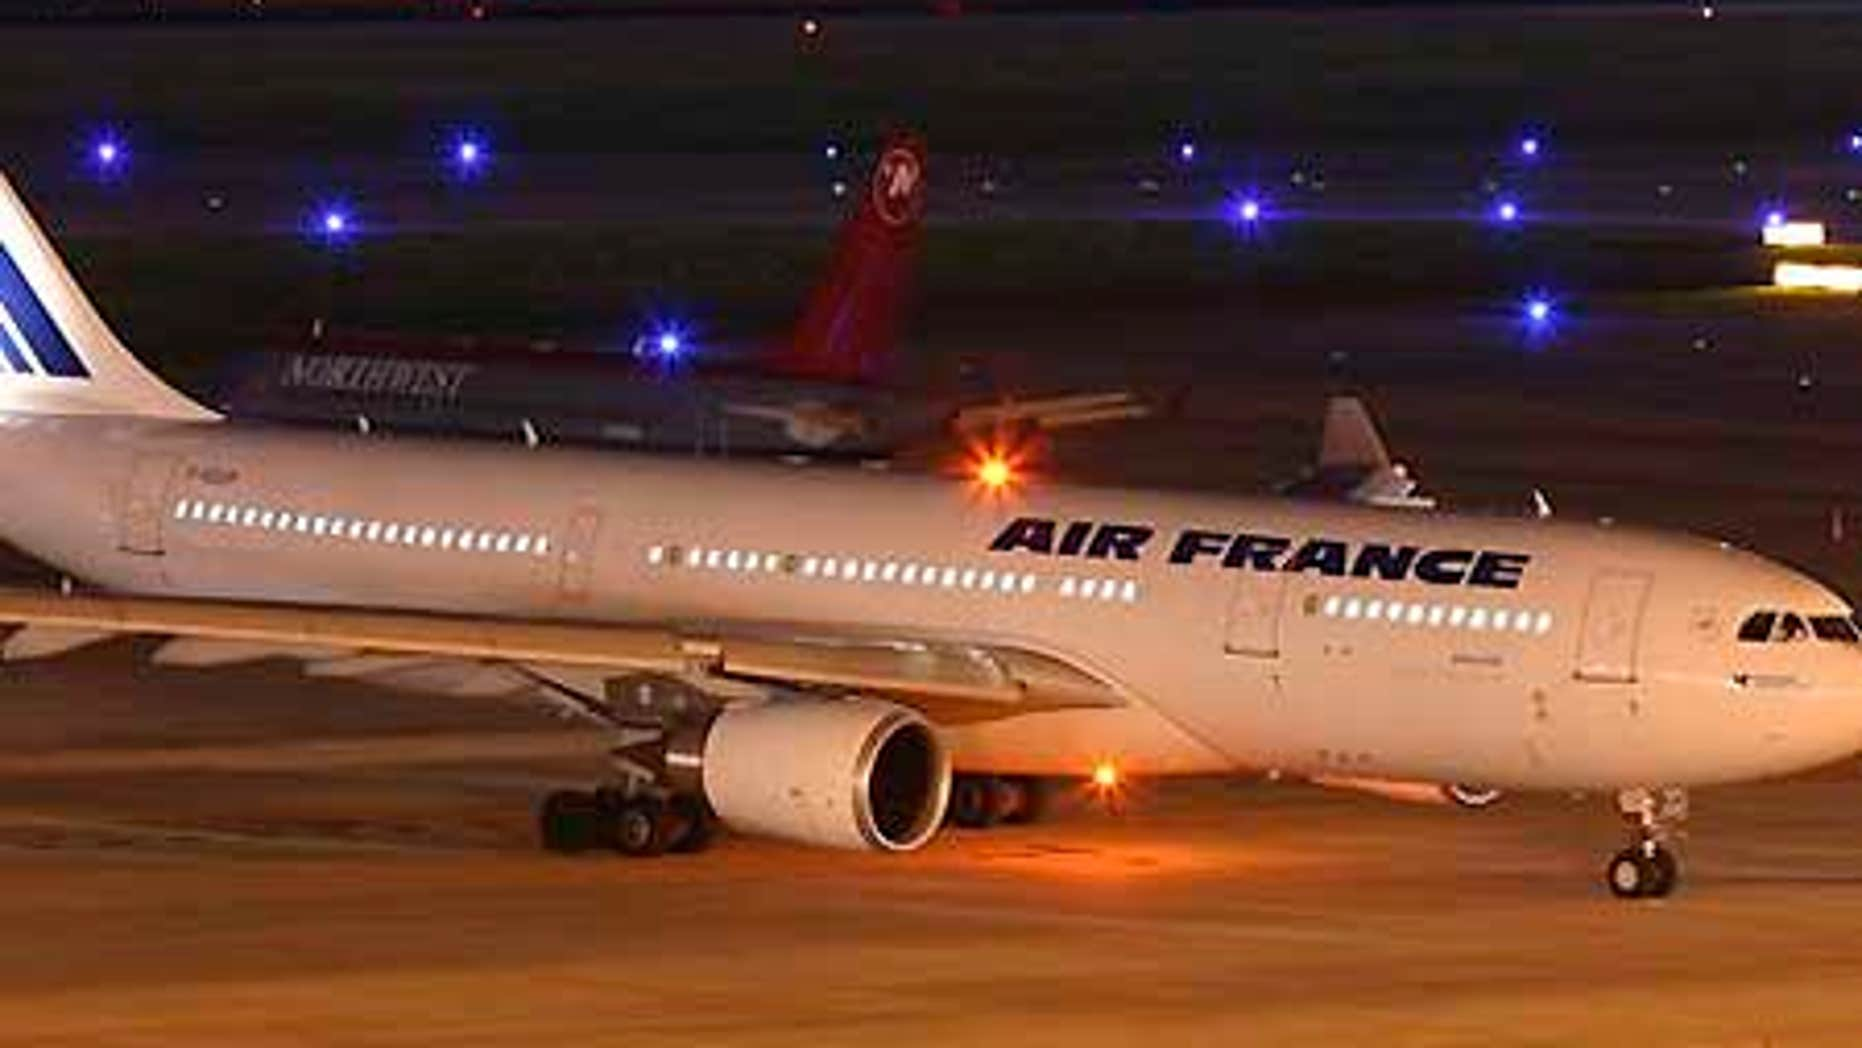 Undated photo taken at Houston's George Bush International Airport shows the Air France Airbus 330-200, the same model that plunged into the Atlantic on June 1.